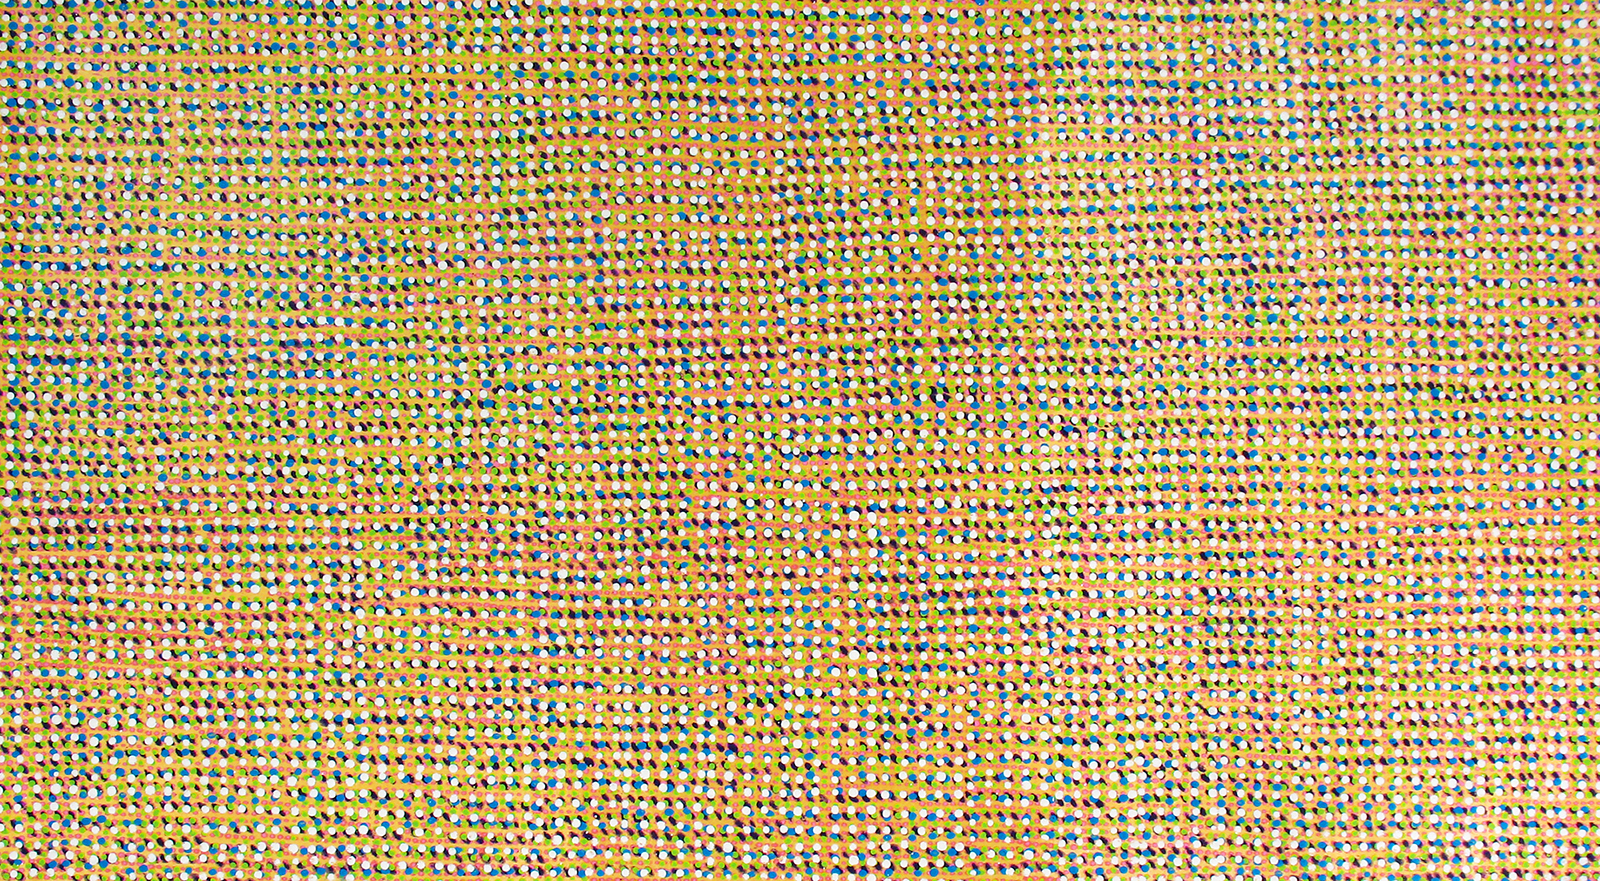 "Jeff Ostergren, Reproduction (2019). Oxycontin, Viagra, Claritin, Luvox, Jolessa, and Acrylic on Kevlar Ballistic Fabric, 51"" x 90.5"""